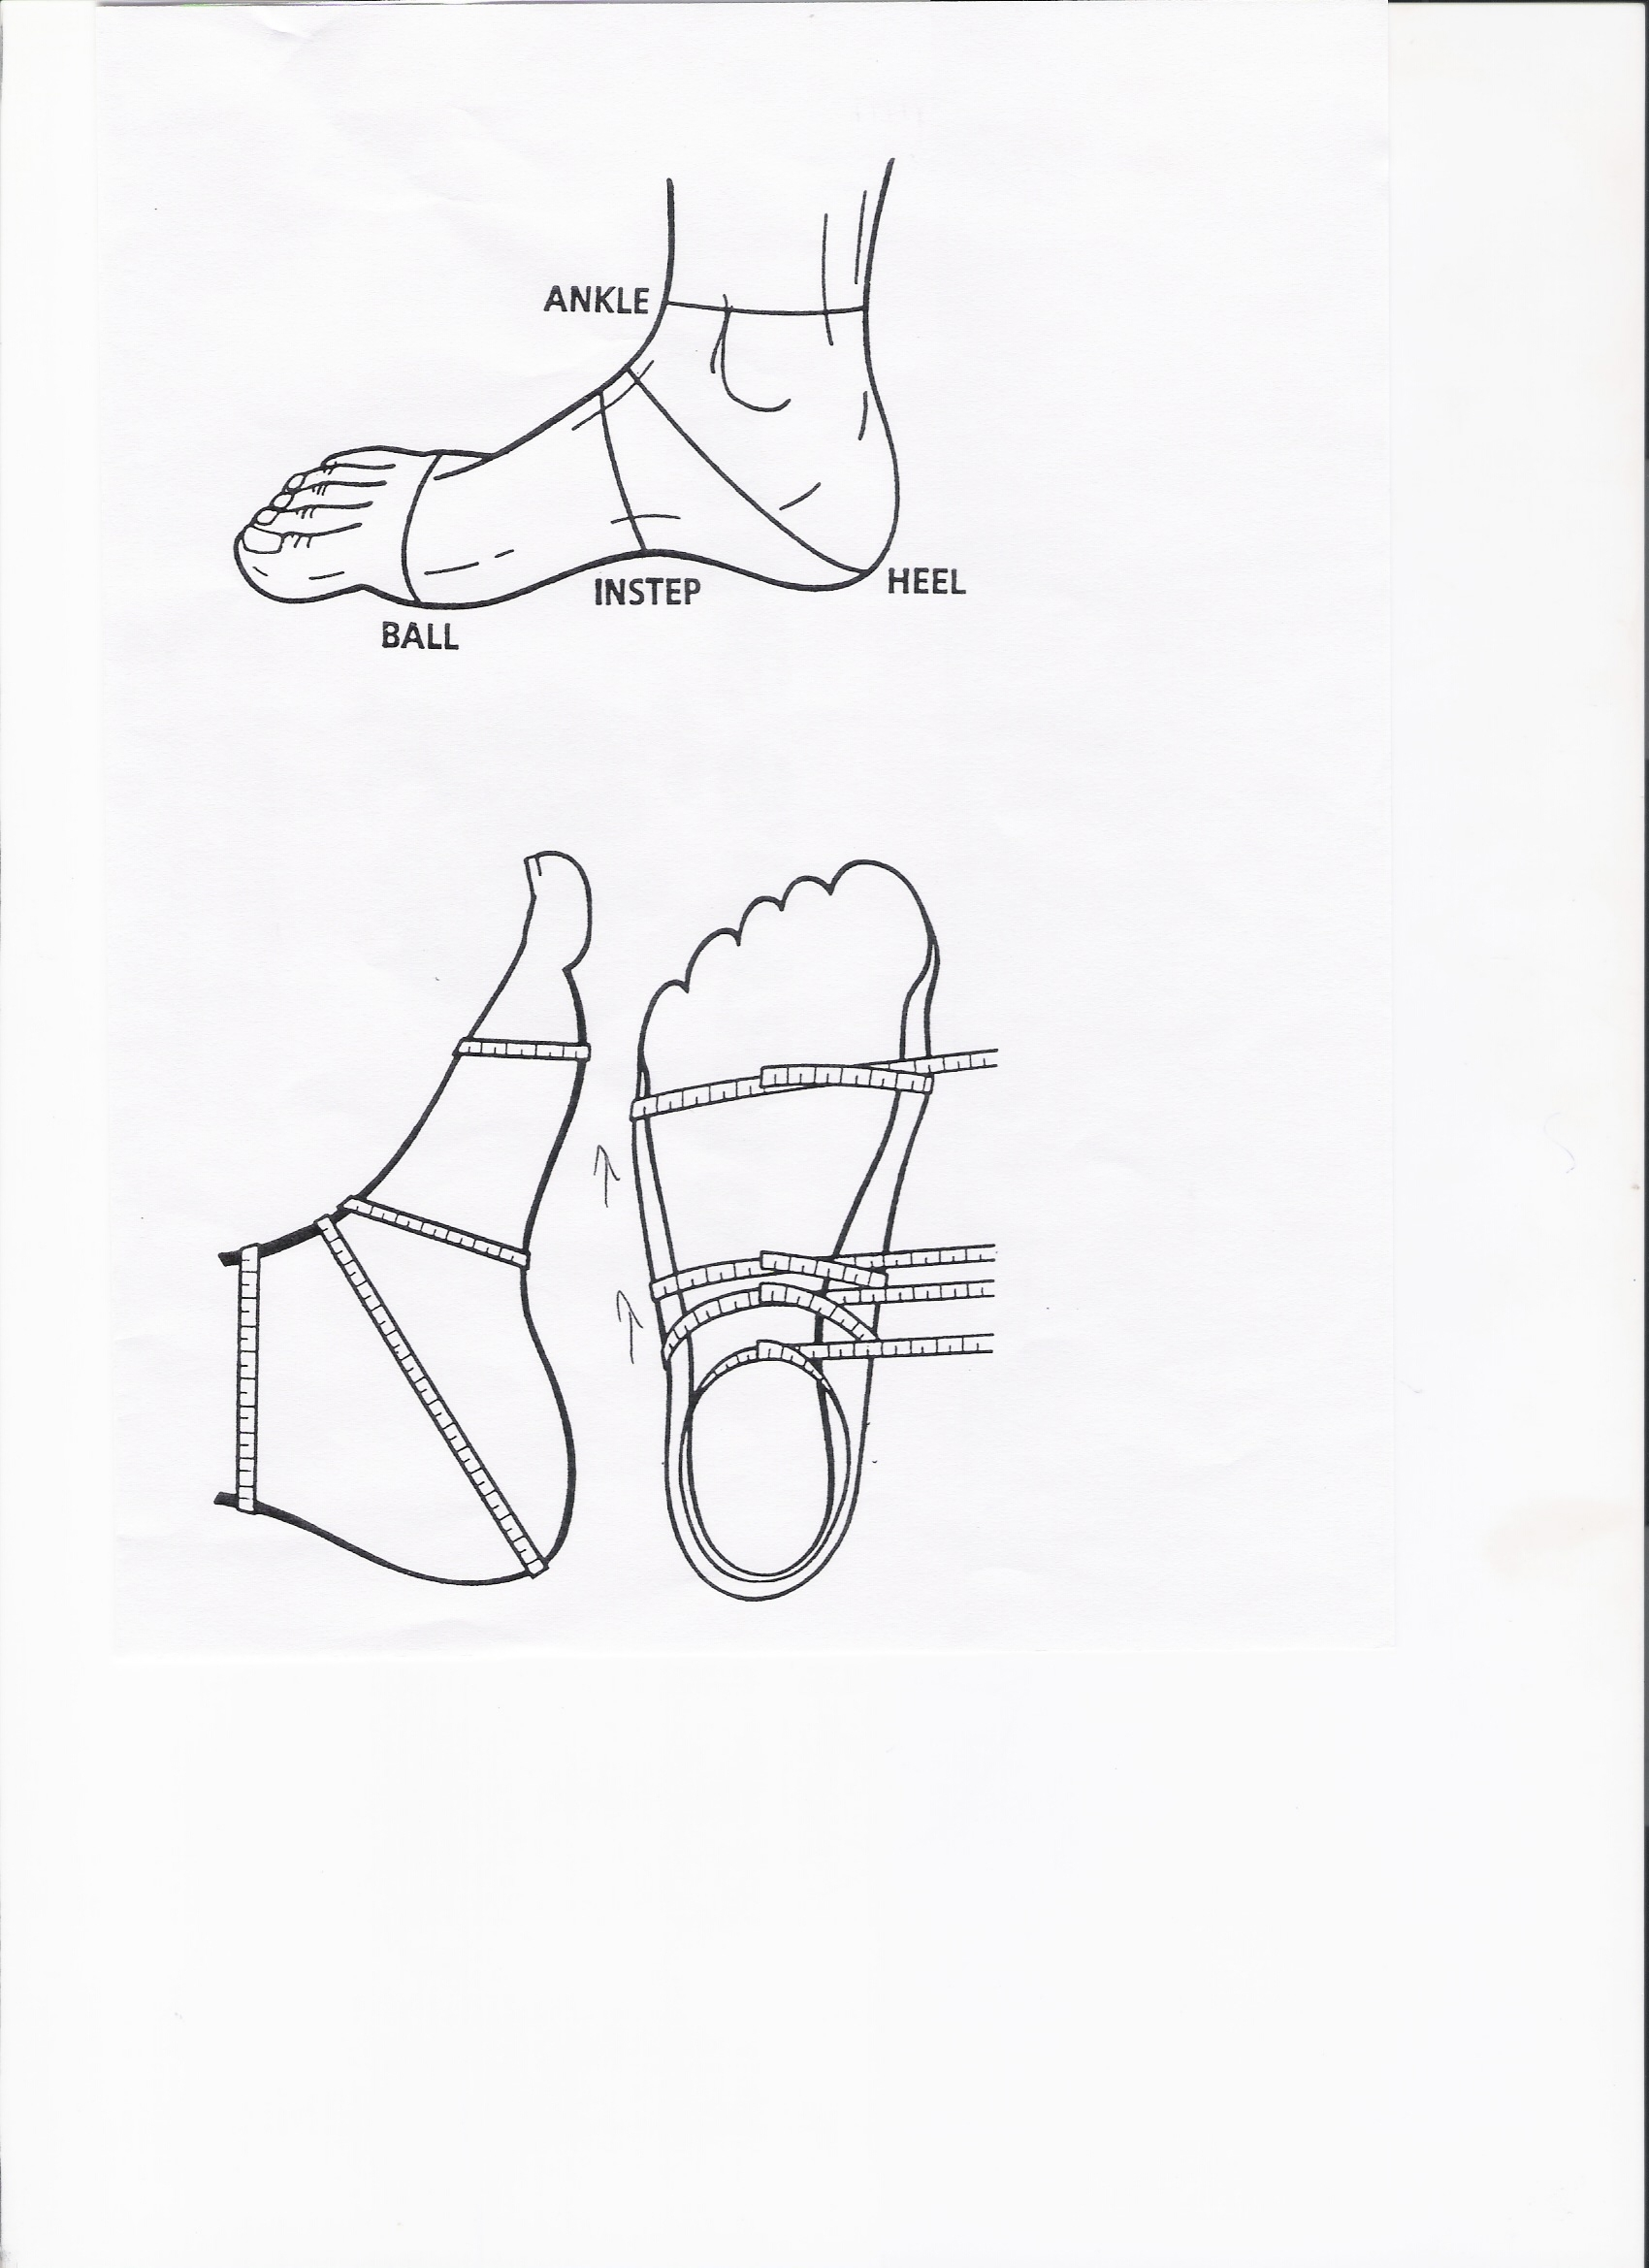 Measurement instructions:  To measure your foot, it's best that you have someone to help you.  1.) Trace each foot on a separate piece of paper. Make sure that your feet are flat on the ground.  2.) With a measuring tape, have a friend measure each foot while you're standing. Please provide us with the measurements above for each foot.  3.) Please provide all measurements in inches.  4.) Scan and send measurements to theeacademyLA@gmail.com. We will reply with a confirmation email.